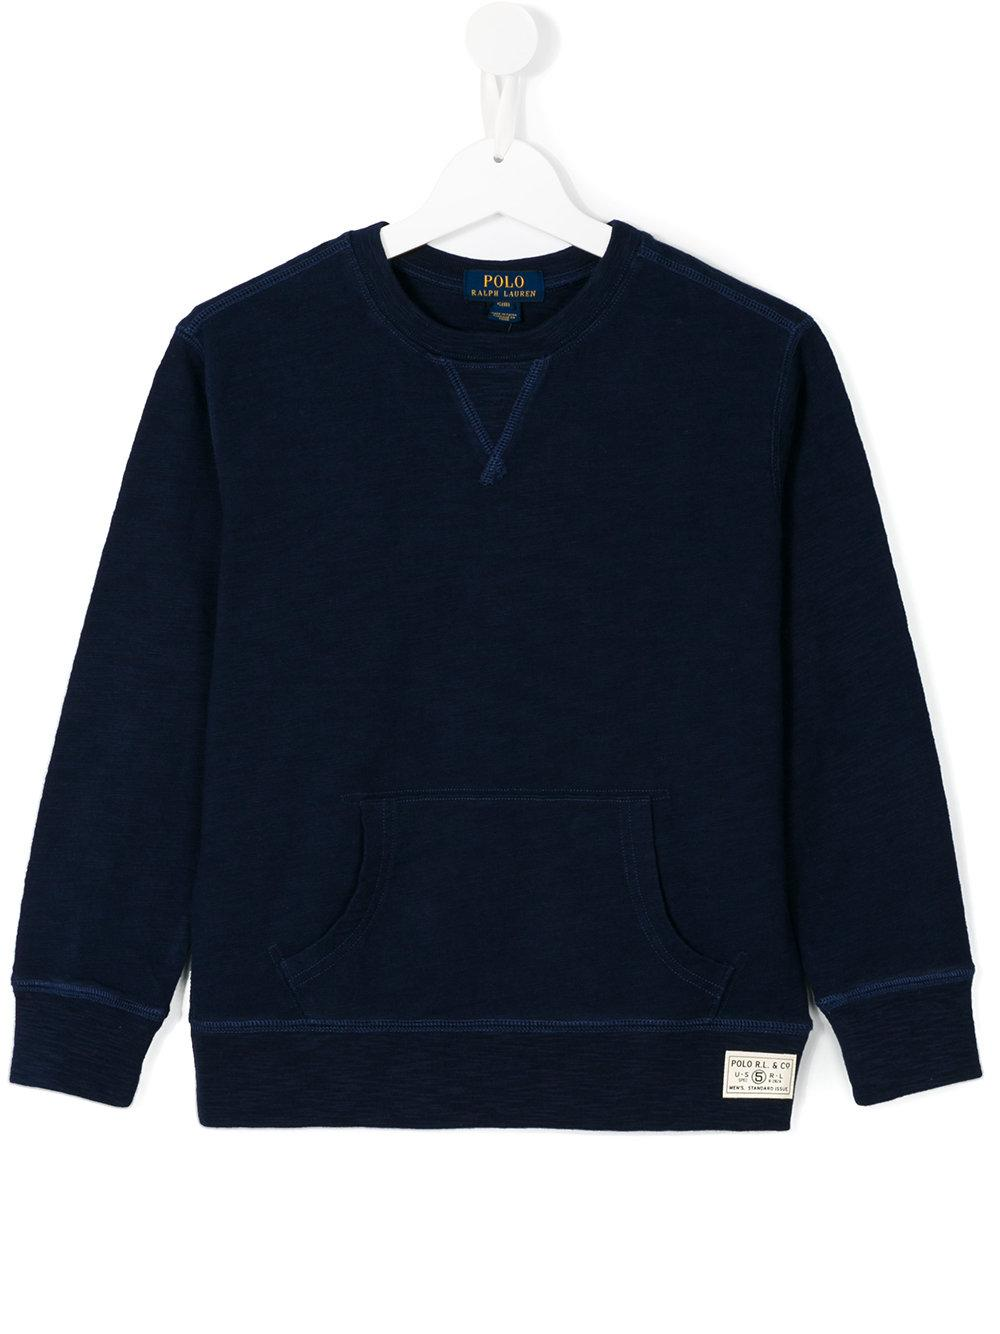 polo ralph lauren crew neck sweatshirt in blue lyst. Black Bedroom Furniture Sets. Home Design Ideas